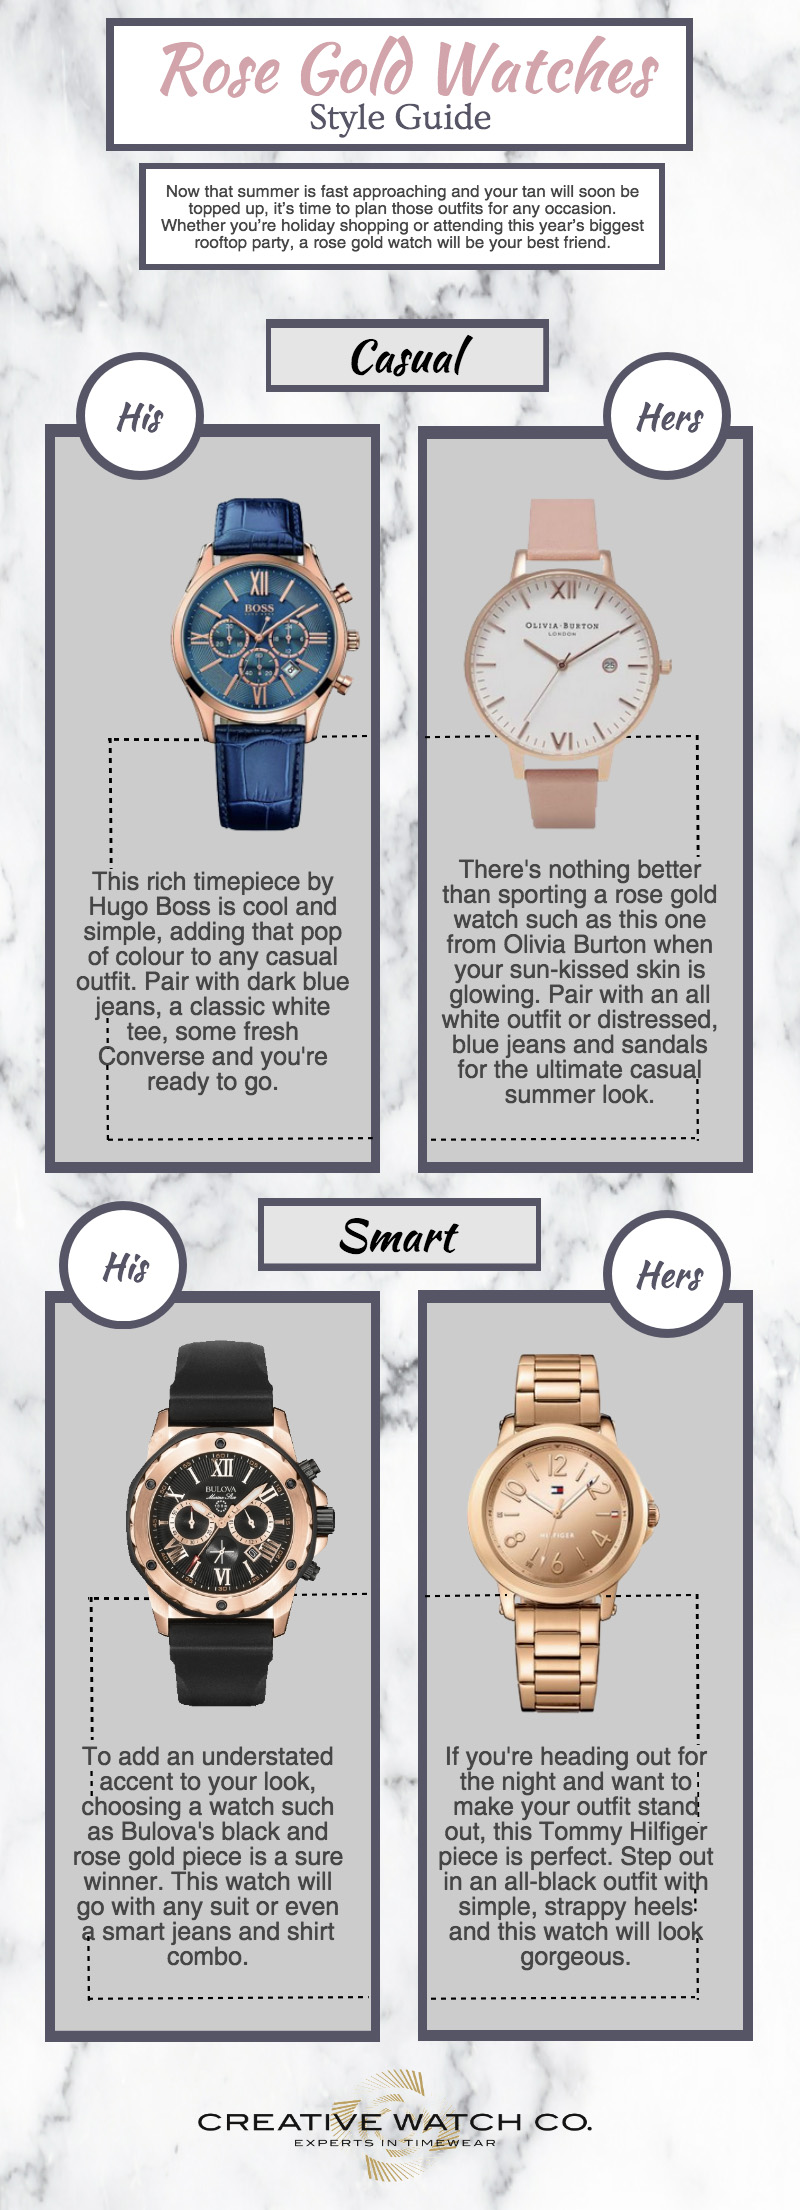 Rose gold watchces summer style guide